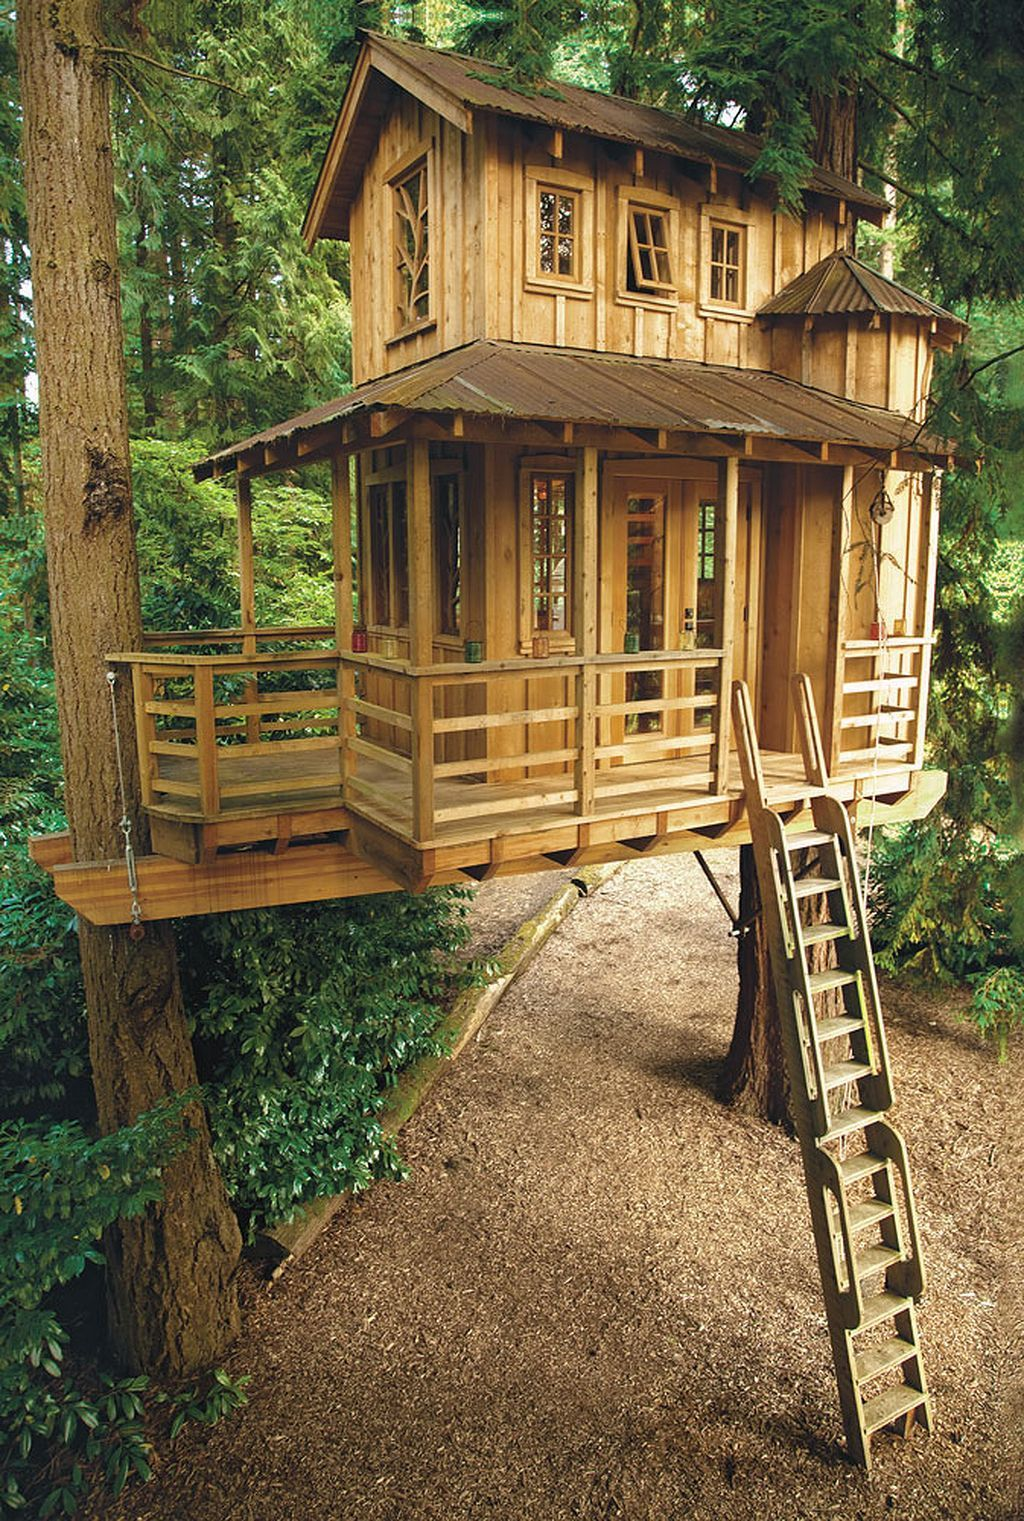 Architecture design ideas Update daily Tree House